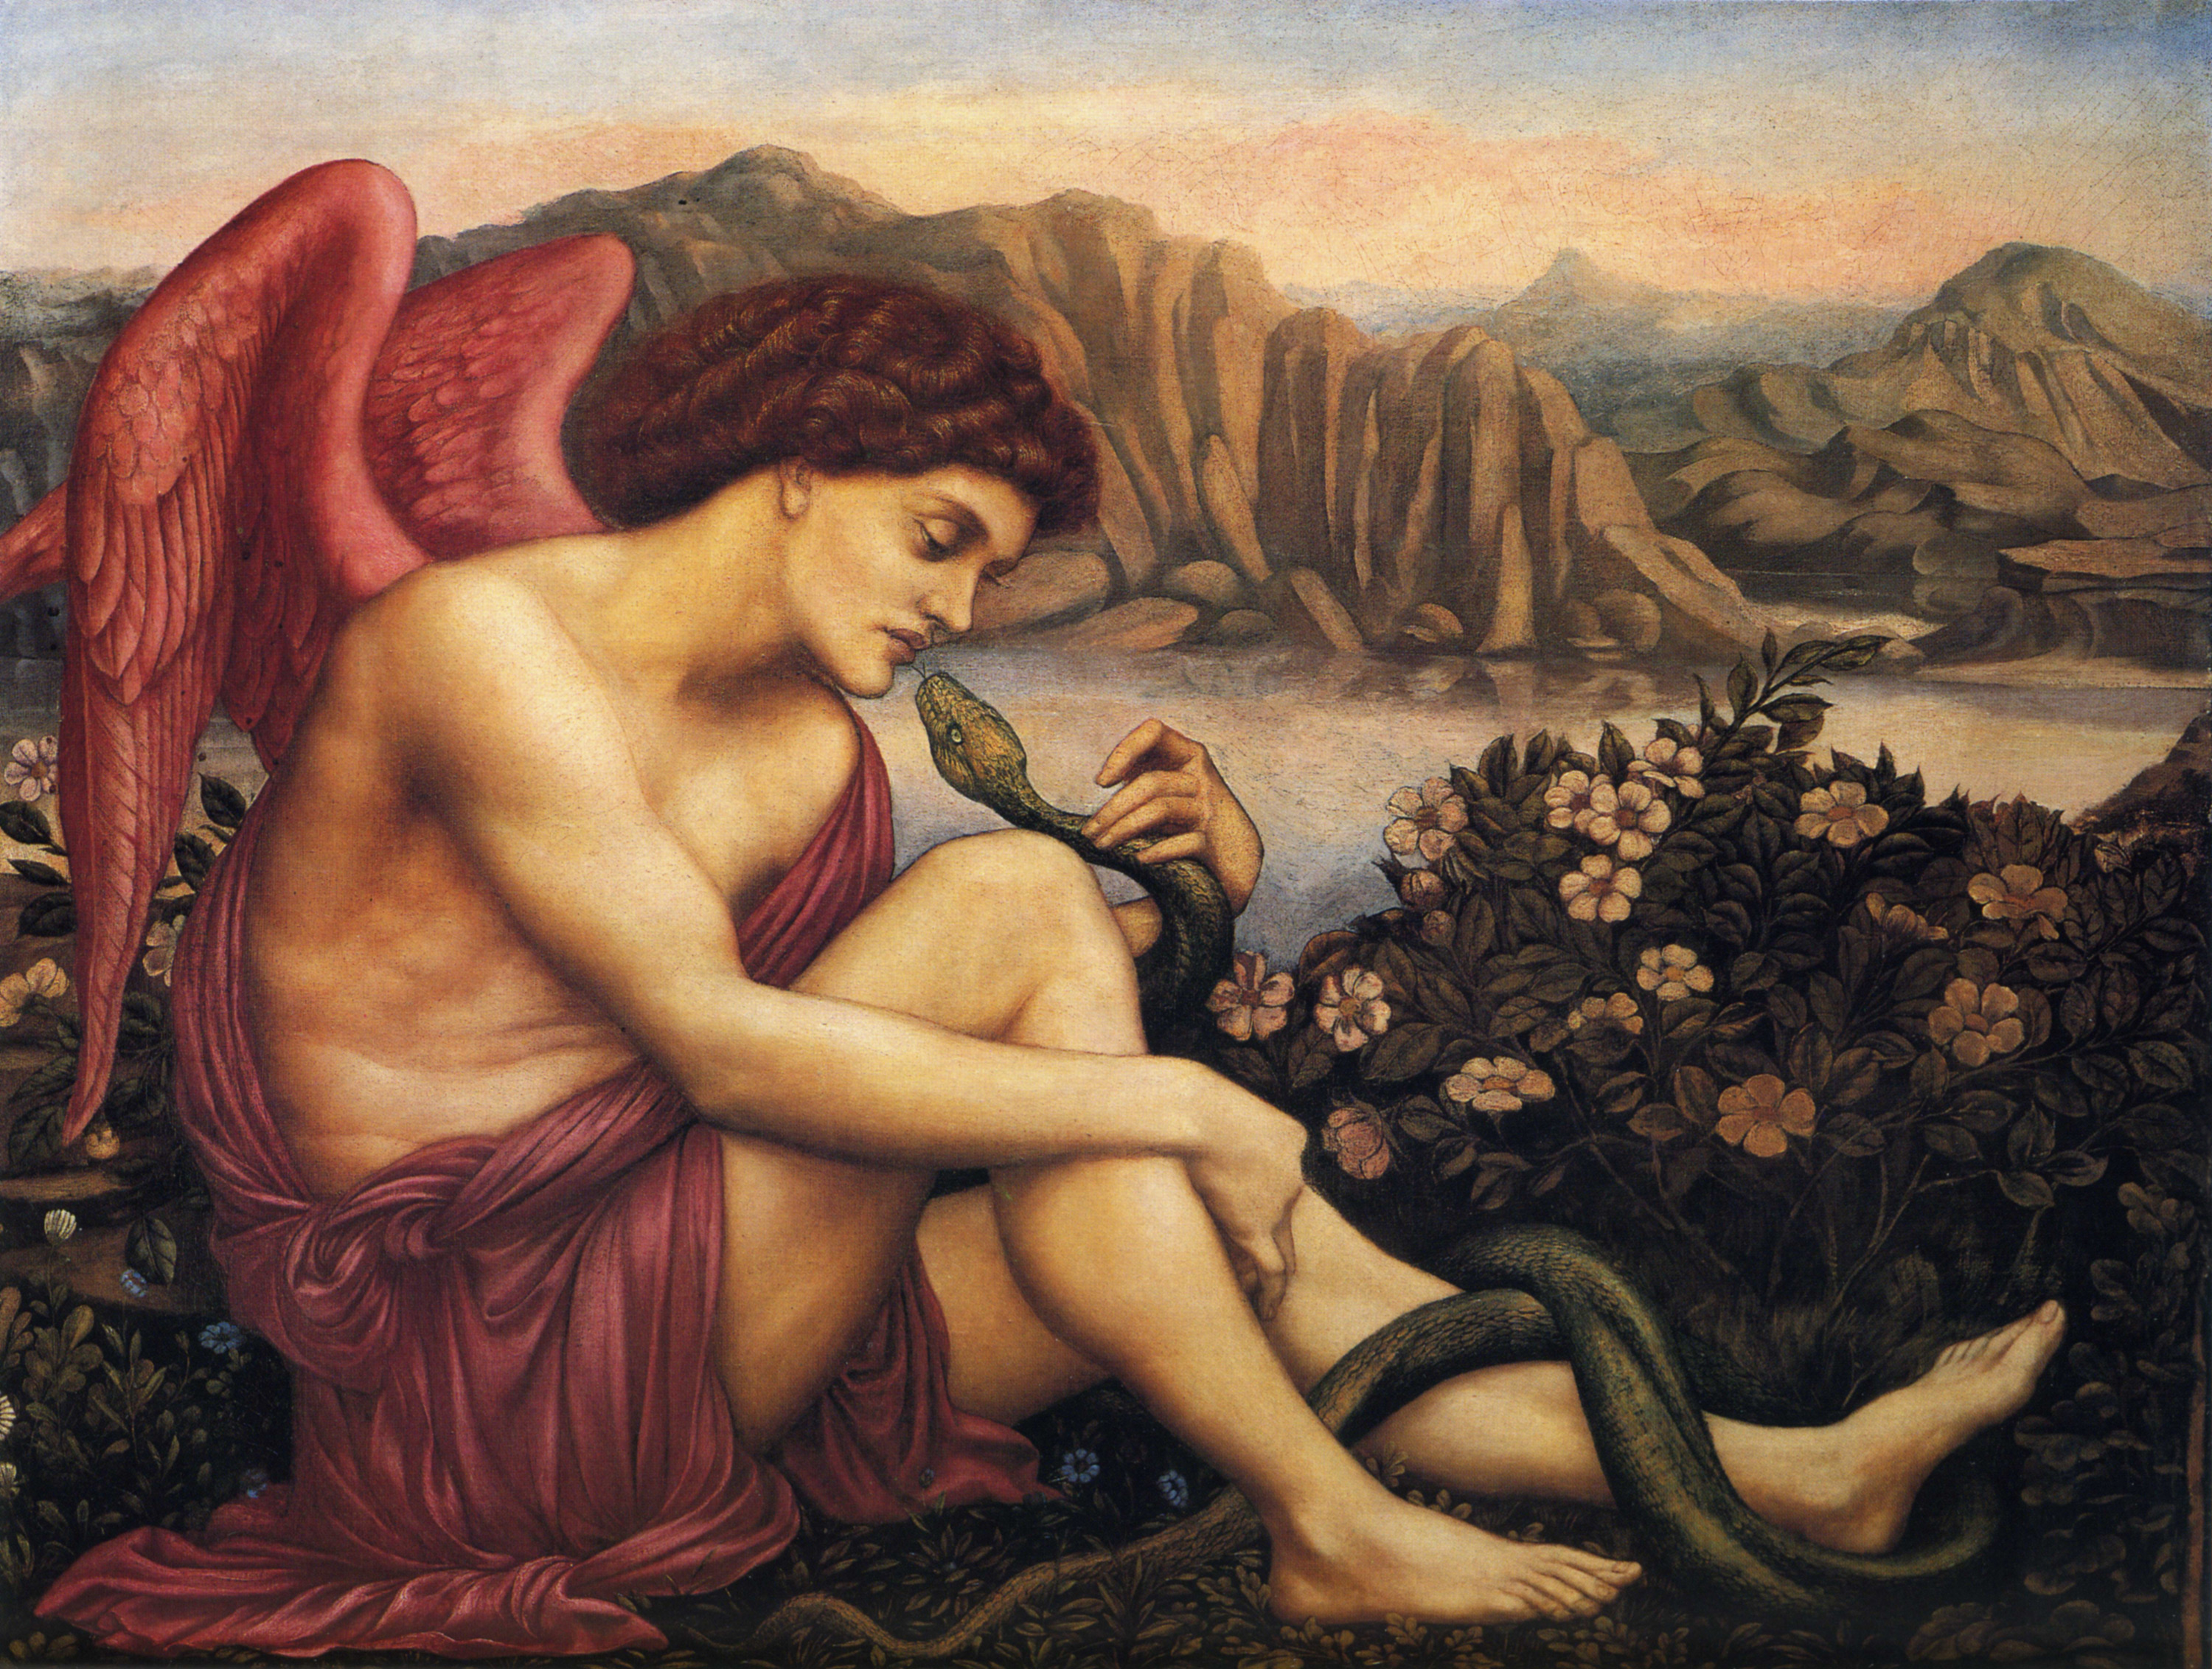 File:Evelyn de Morgan - The Angel with the Serpent, 1870-1875.jpg -  Wikimedia Commons